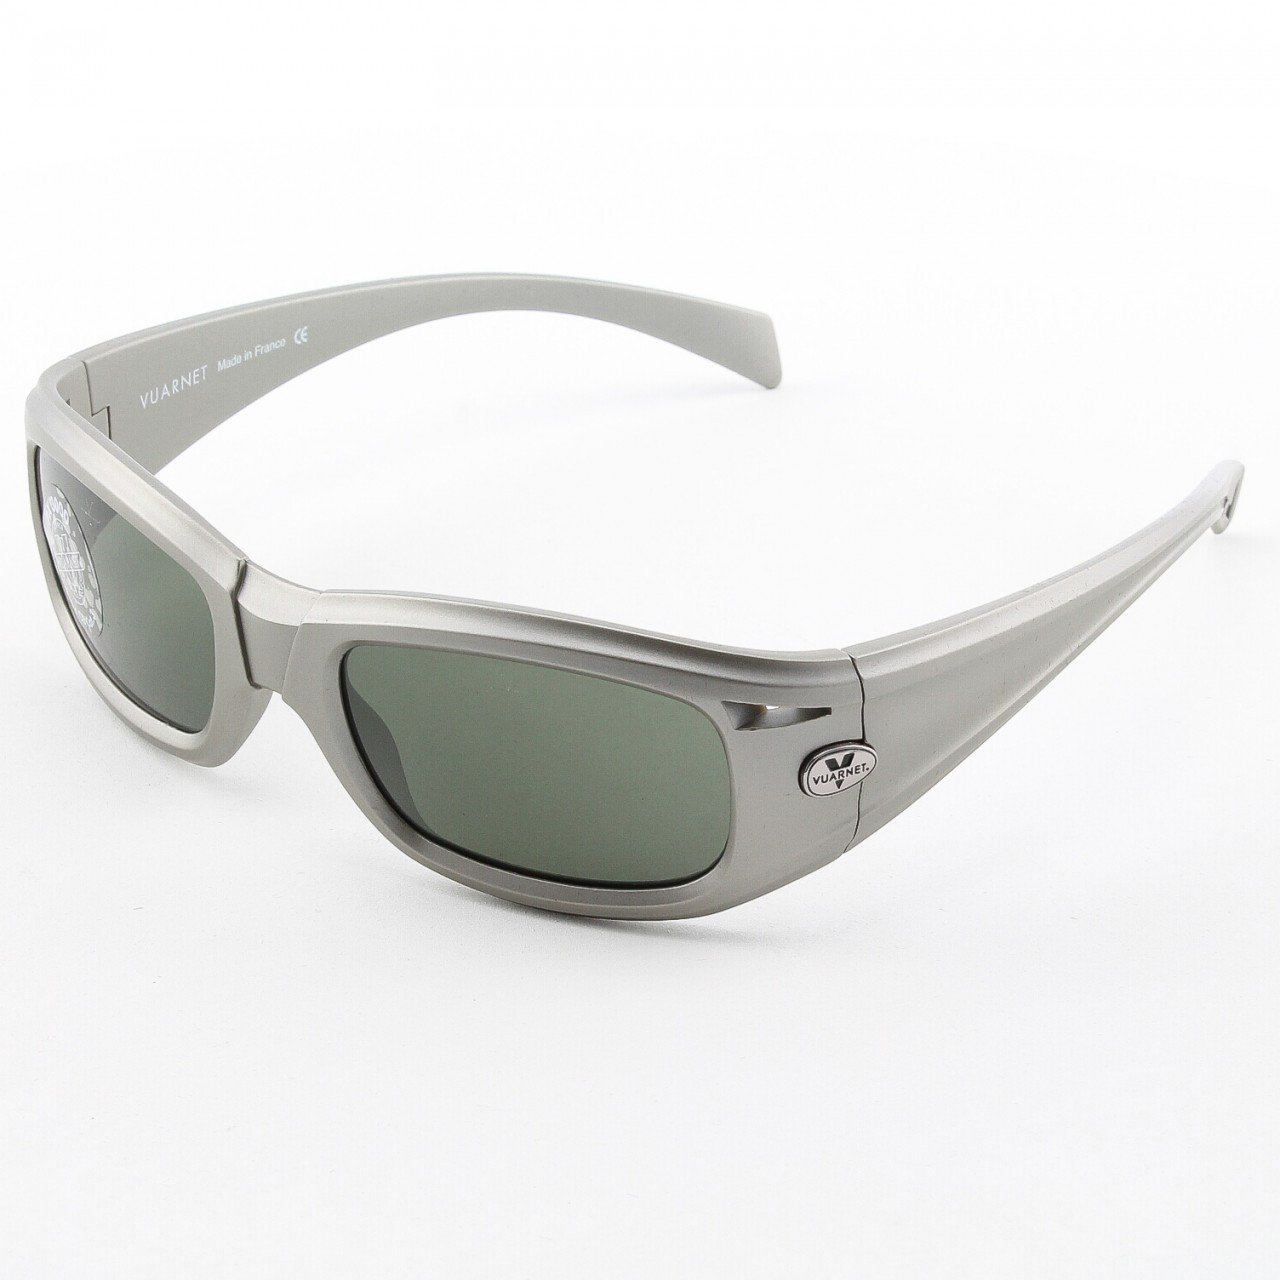 Vuarnet VL 1126 Sunglasses Col. P00L 1121 Silver with Grey PX3000 Lenses